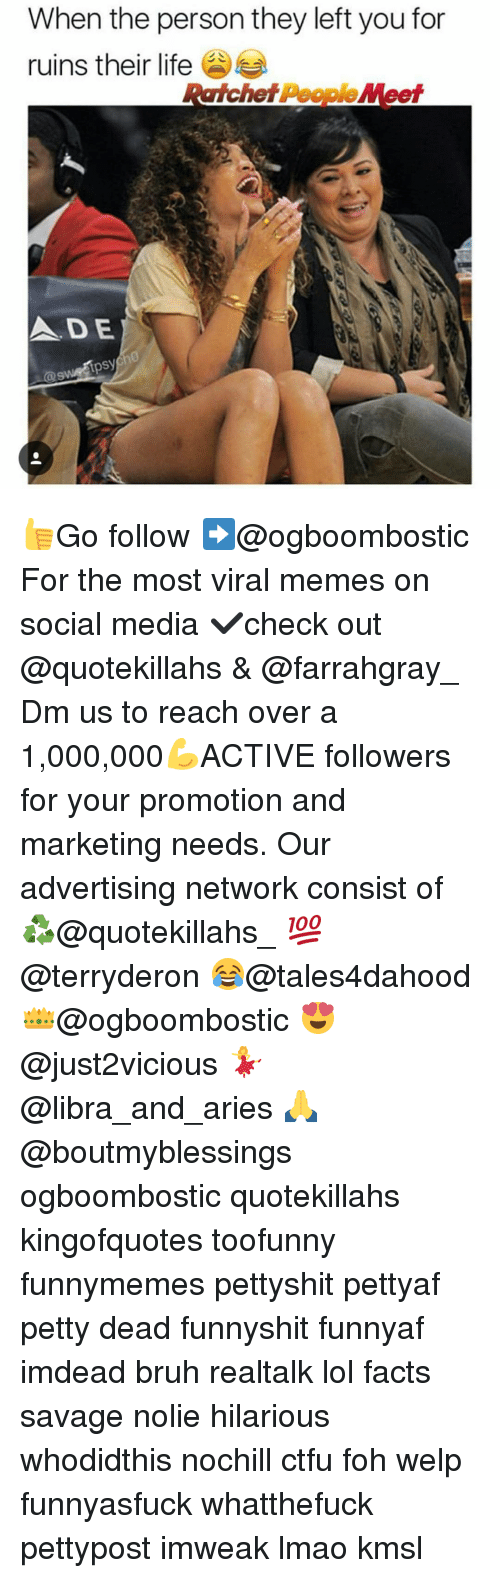 Foh, Memes, and Libra: When the person they left you for  ruins their life  archet  People  ADE  tpsy 👍Go follow ➡@ogboombostic For the most viral memes on social media ✔check out @quotekillahs & @farrahgray_ Dm us to reach over a 1,000,000💪ACTIVE followers for your promotion and marketing needs. Our advertising network consist of ♻@quotekillahs_ 💯@terryderon 😂@tales4dahood 👑@ogboombostic 😍@just2vicious 💃@libra_and_aries 🙏@boutmyblessings ogboombostic quotekillahs kingofquotes toofunny funnymemes pettyshit pettyaf petty dead funnyshit funnyaf imdead bruh realtalk lol facts savage nolie hilarious whodidthis nochill ctfu foh welp funnyasfuck whatthefuck pettypost imweak lmao kmsl